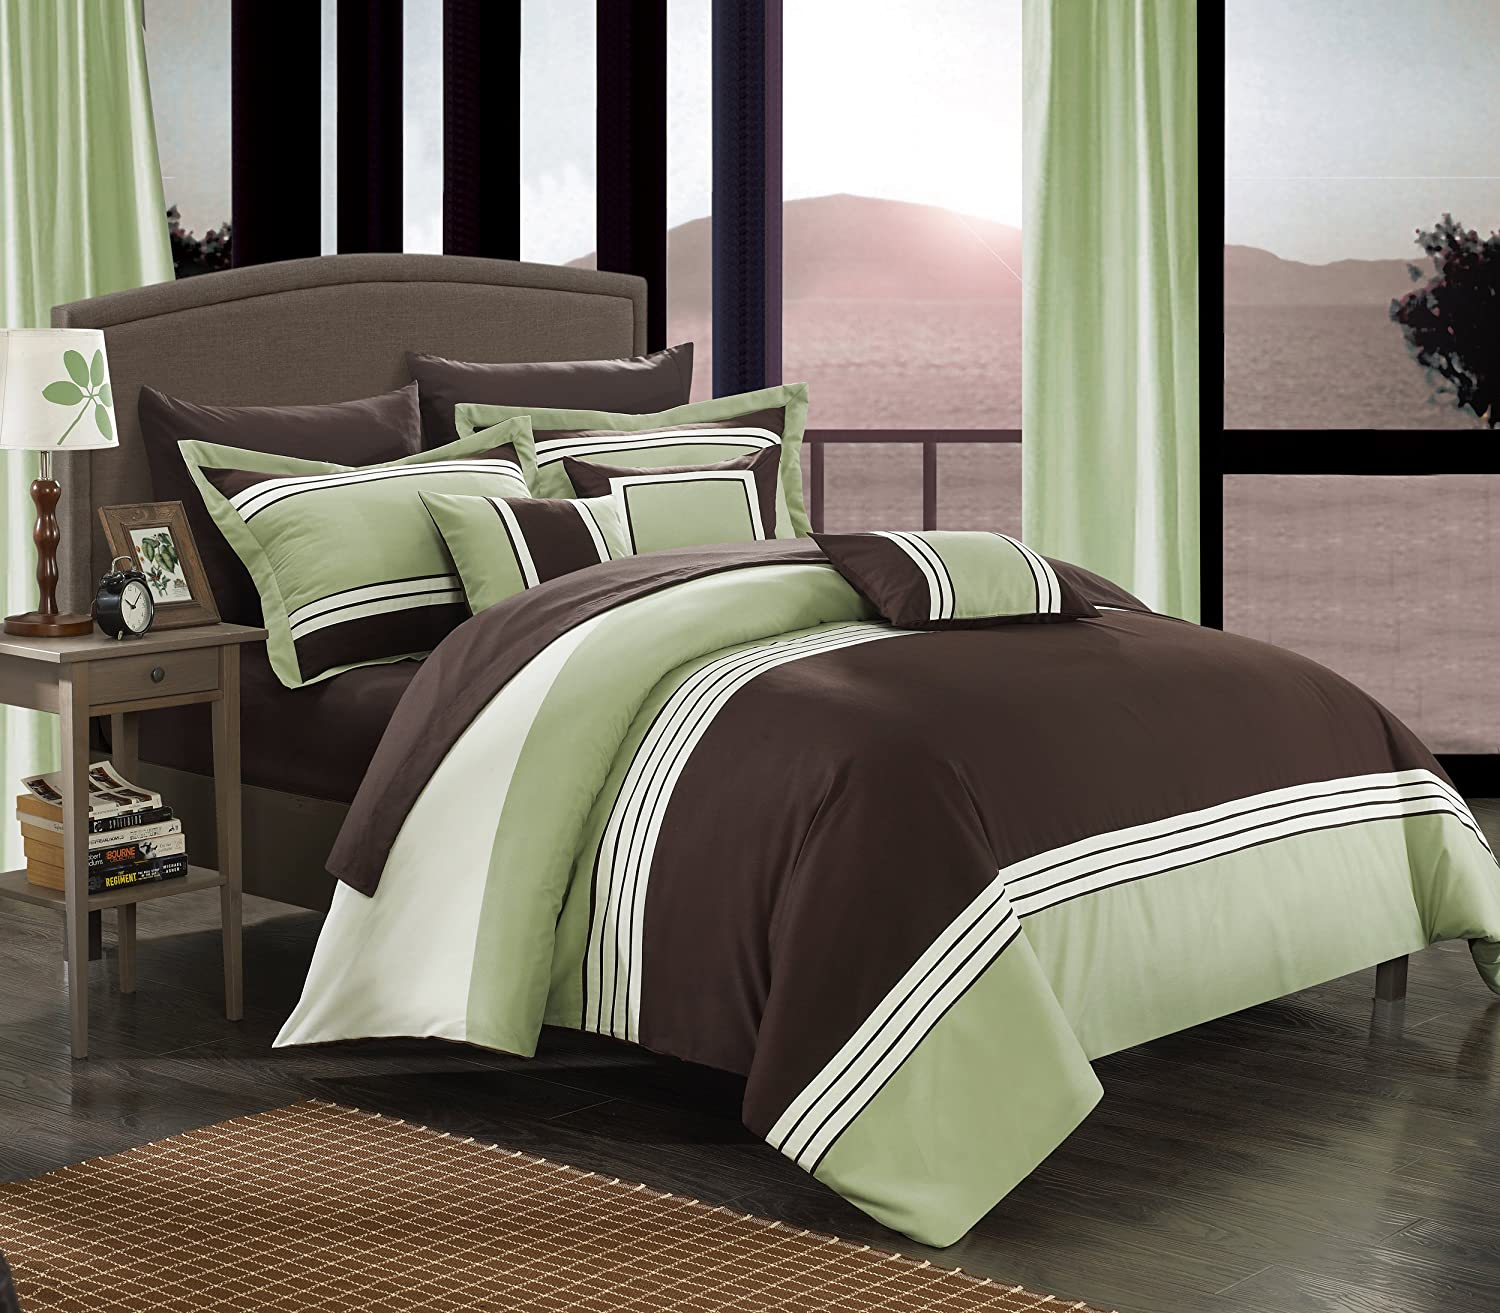 Superior Amazon.com: Chic Home 10 Piece Falcon Bed In A Bag Comforter Set, Queen,  Green: Home U0026 Kitchen